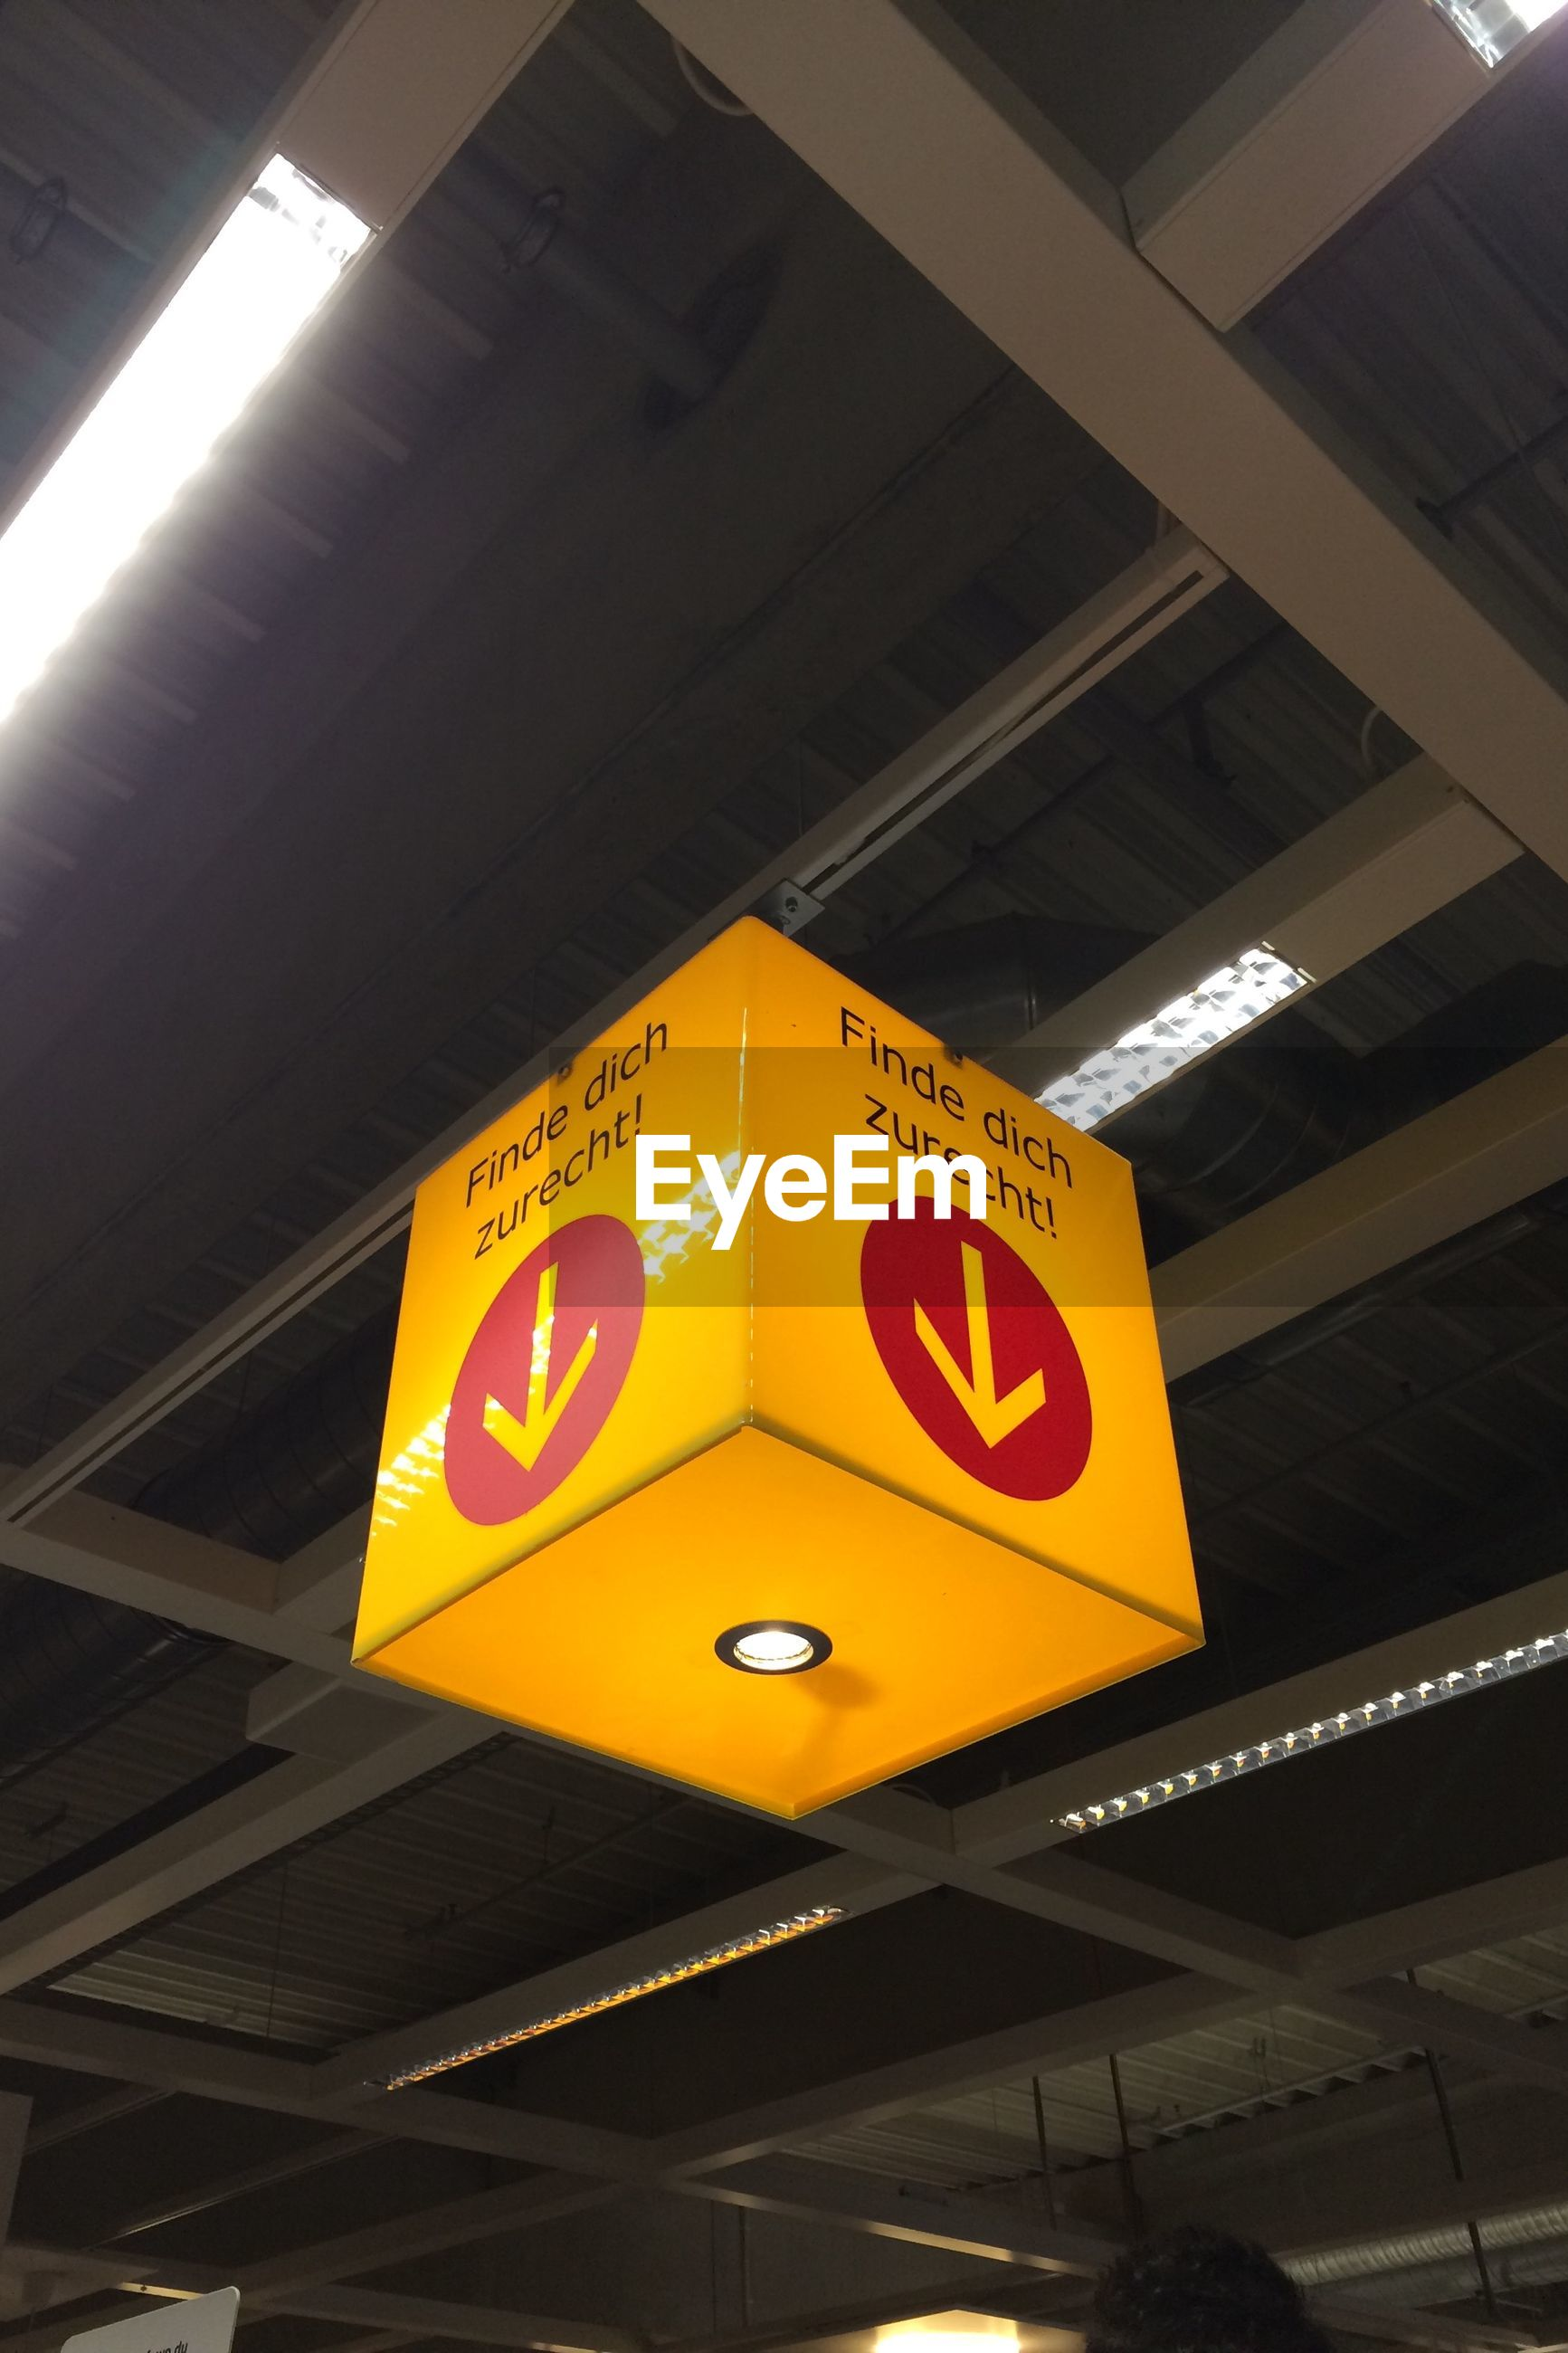 Information sign hanging in ceiling